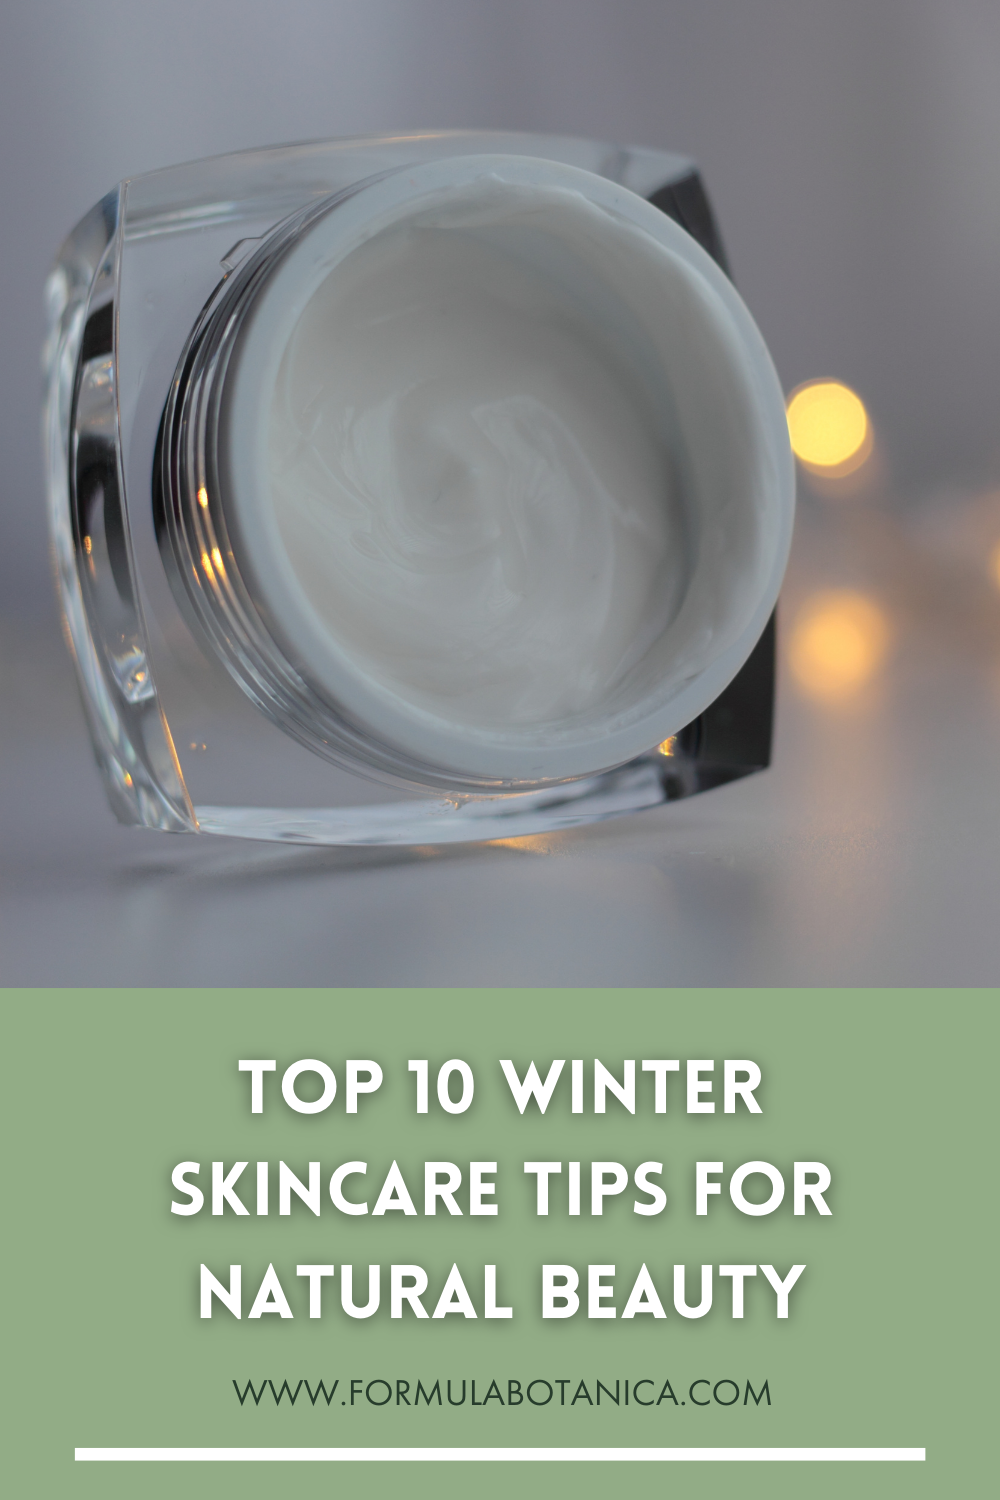 Top 10 Winter Skincare Tips for Natural Beauty